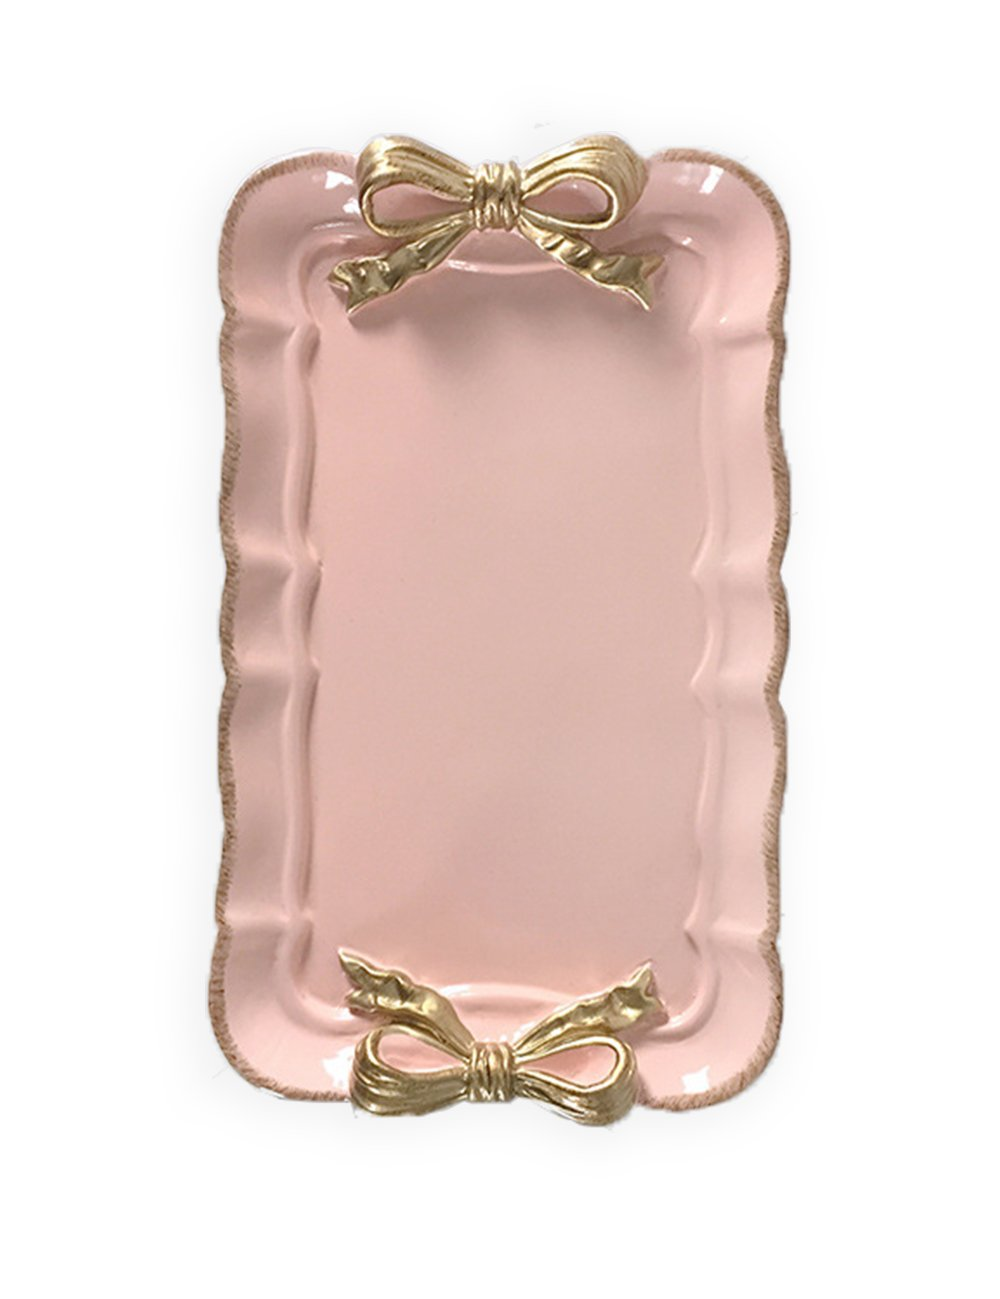 What's Fun Retro Rectangle Butterfly Bowknot Decorative Tray Plate for Dessert/Cake/Cafe/Home Décor (Green) JX